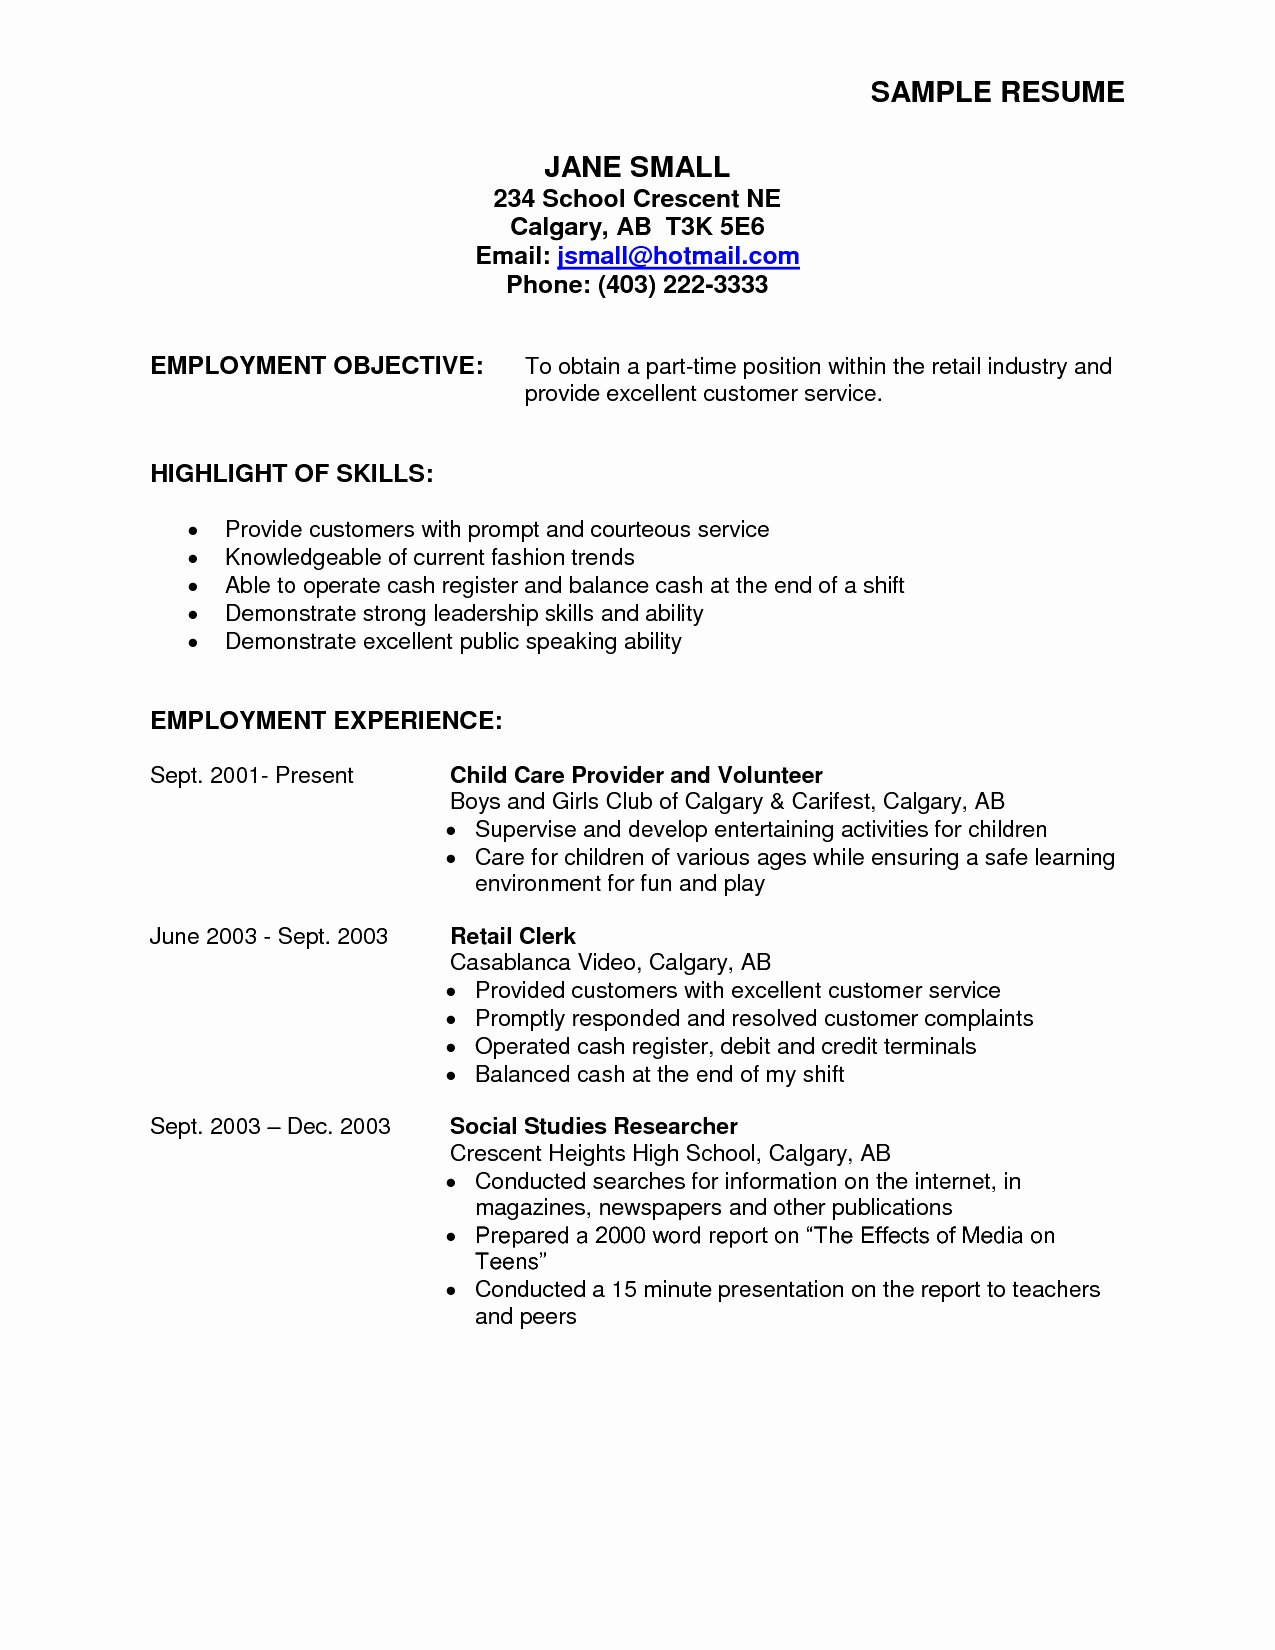 Part Time Job Resume Fresh 23 Most Useful Part Time Resume Types Just for 2019